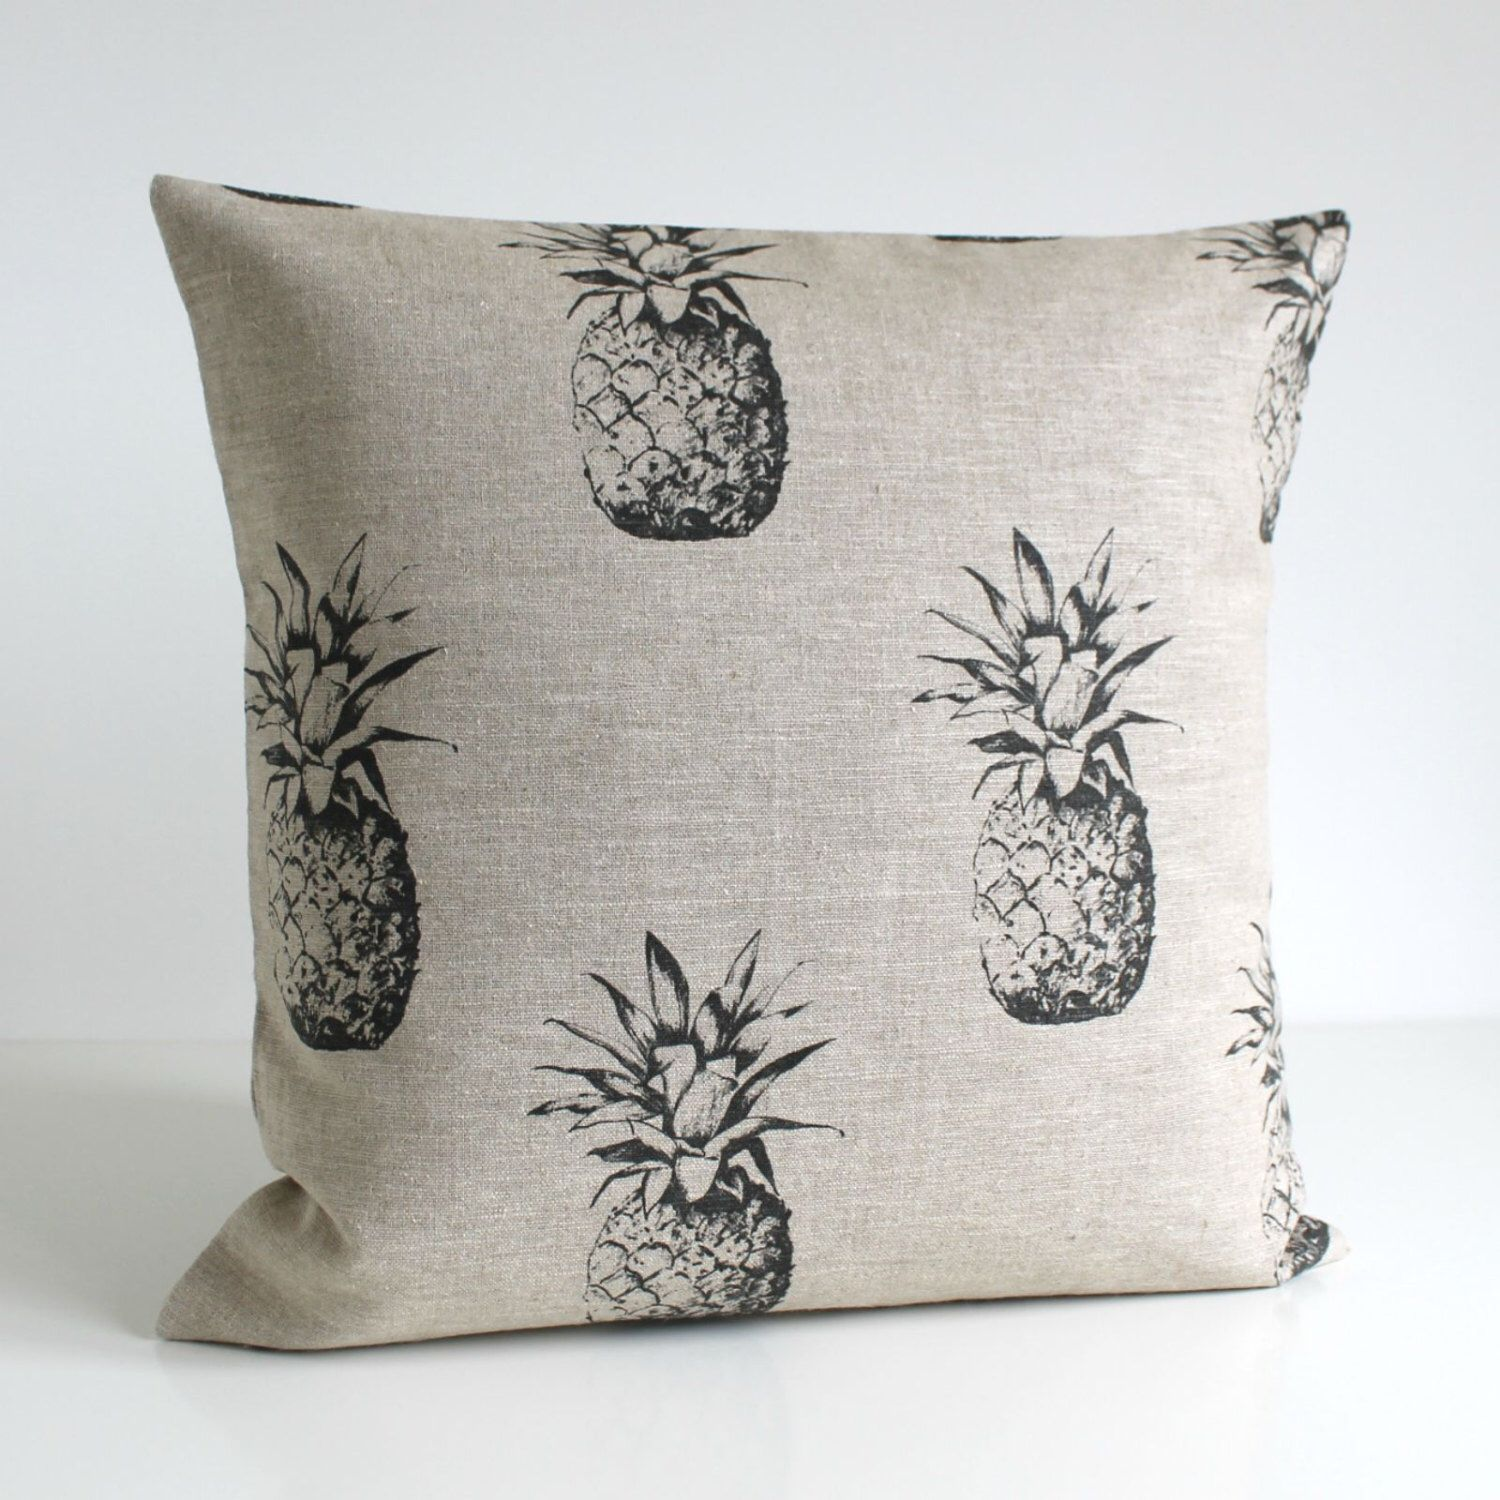 17x17 pillow cover, 17% linen, 17 Inch Pillow Cover, Pineapple ...